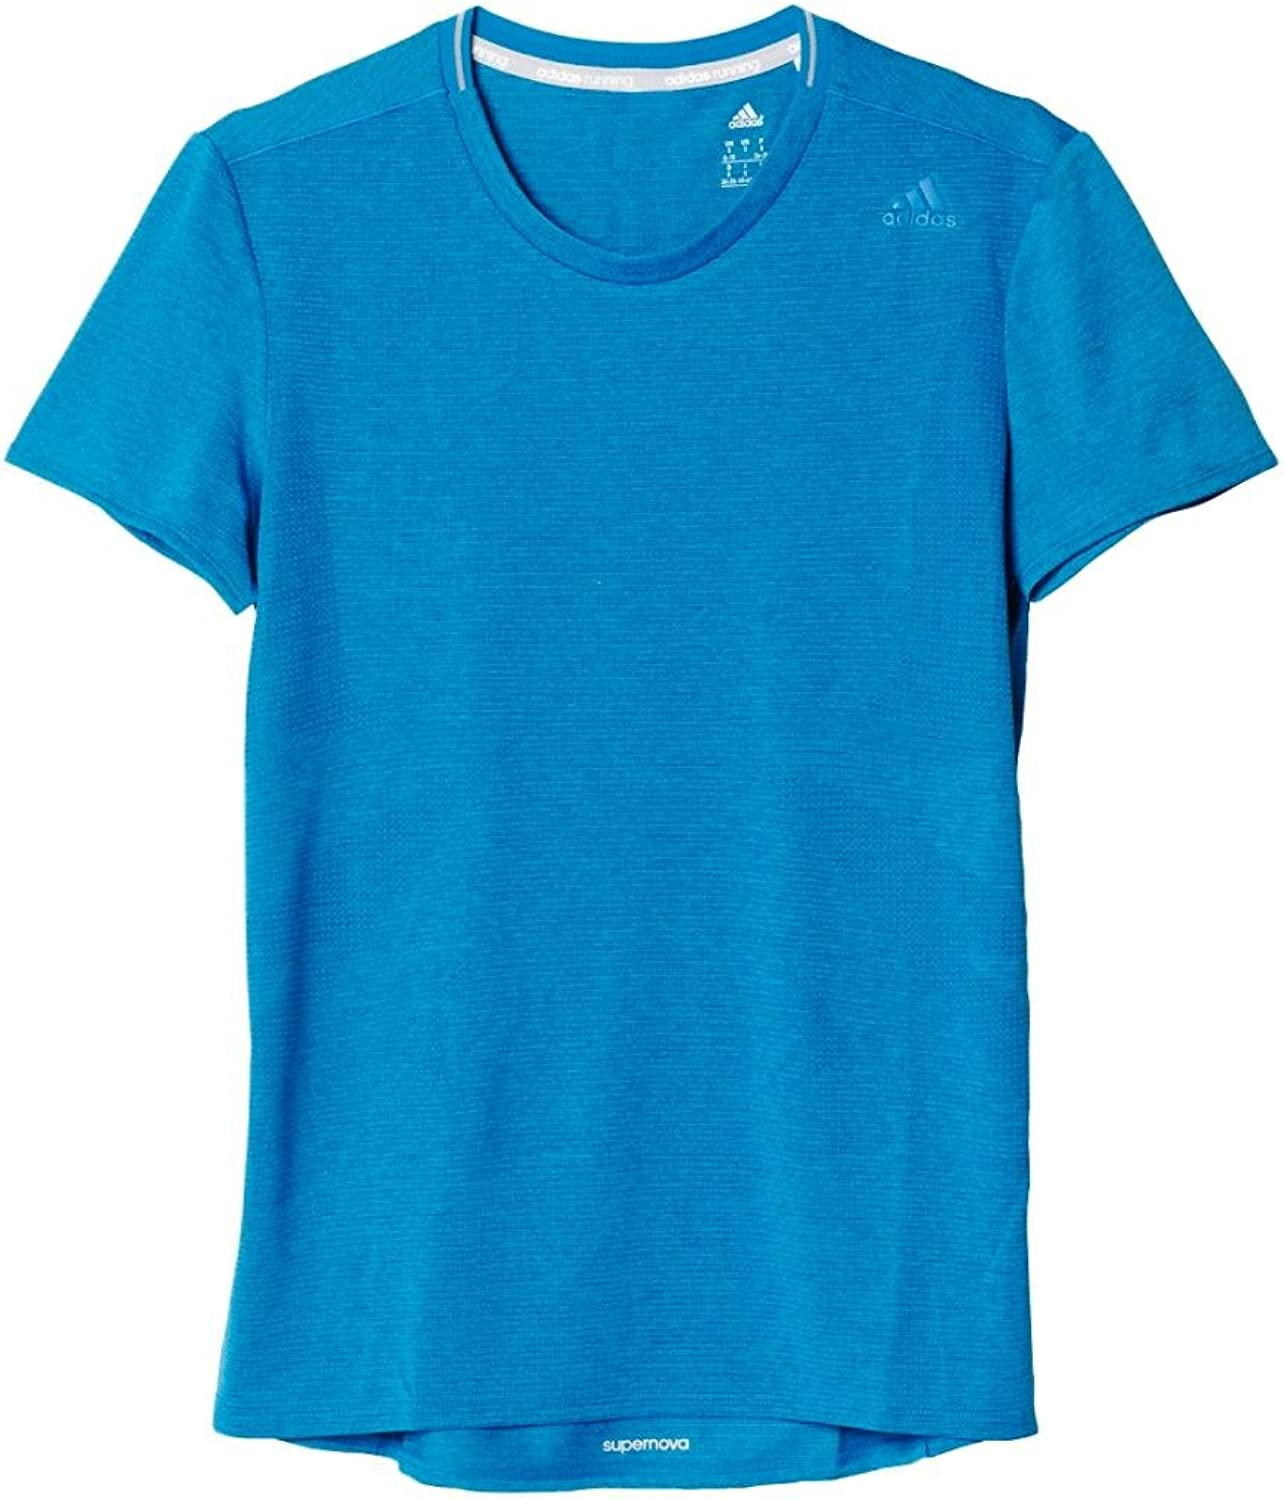 Adidas Women's Supernova Short Sleeve Tee, Unity bluee, Large